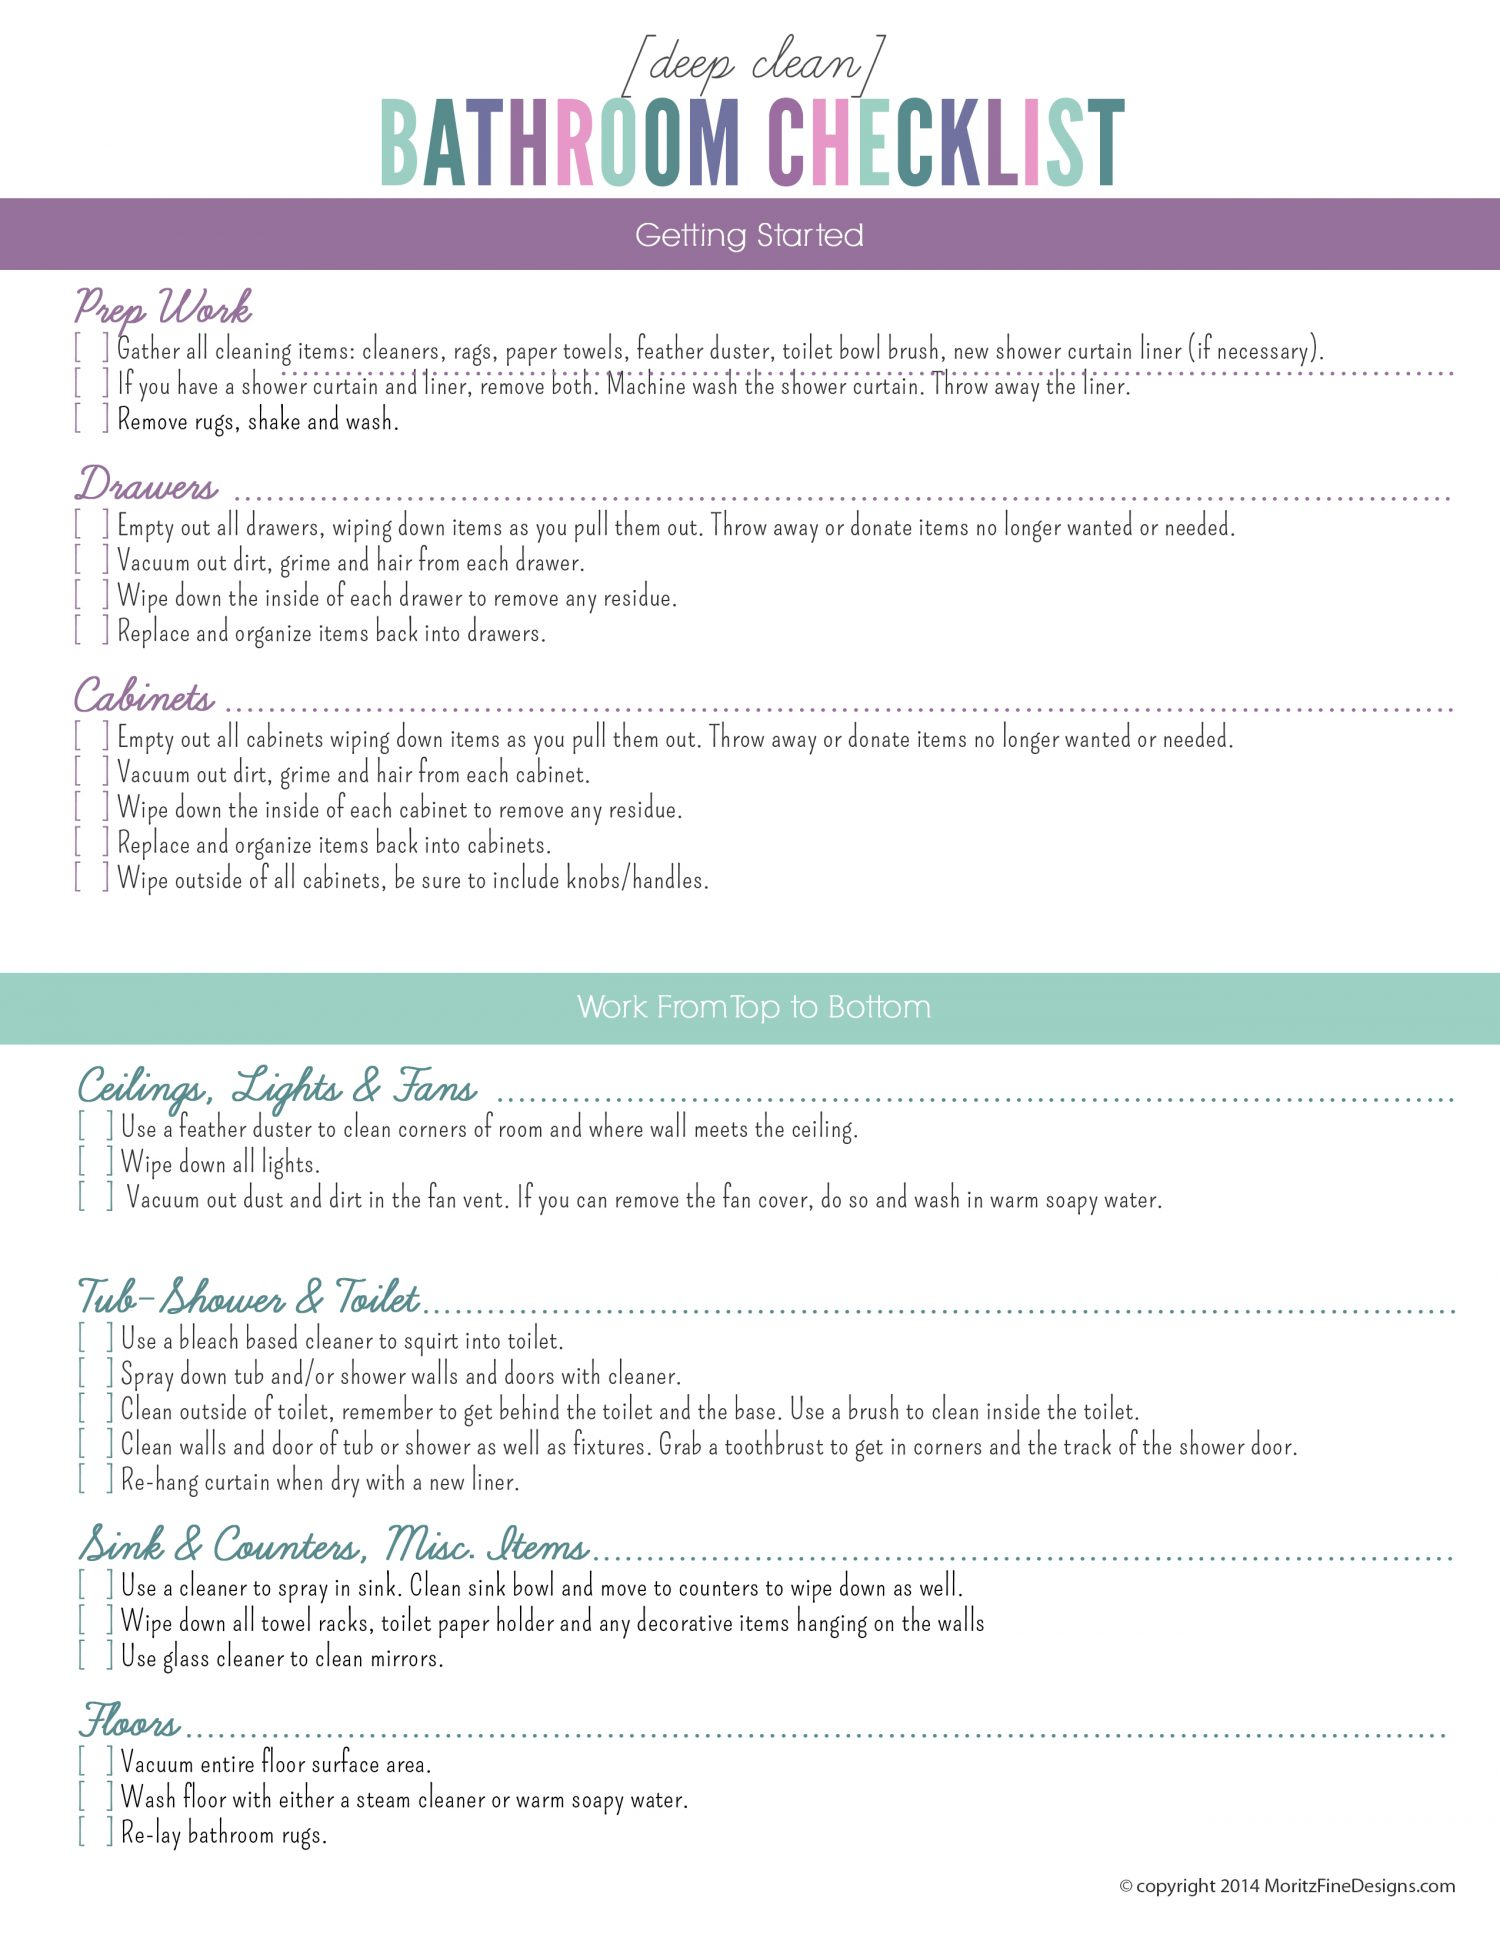 Deep clean the bathroom checklist free printable for Bathroom deep cleaning